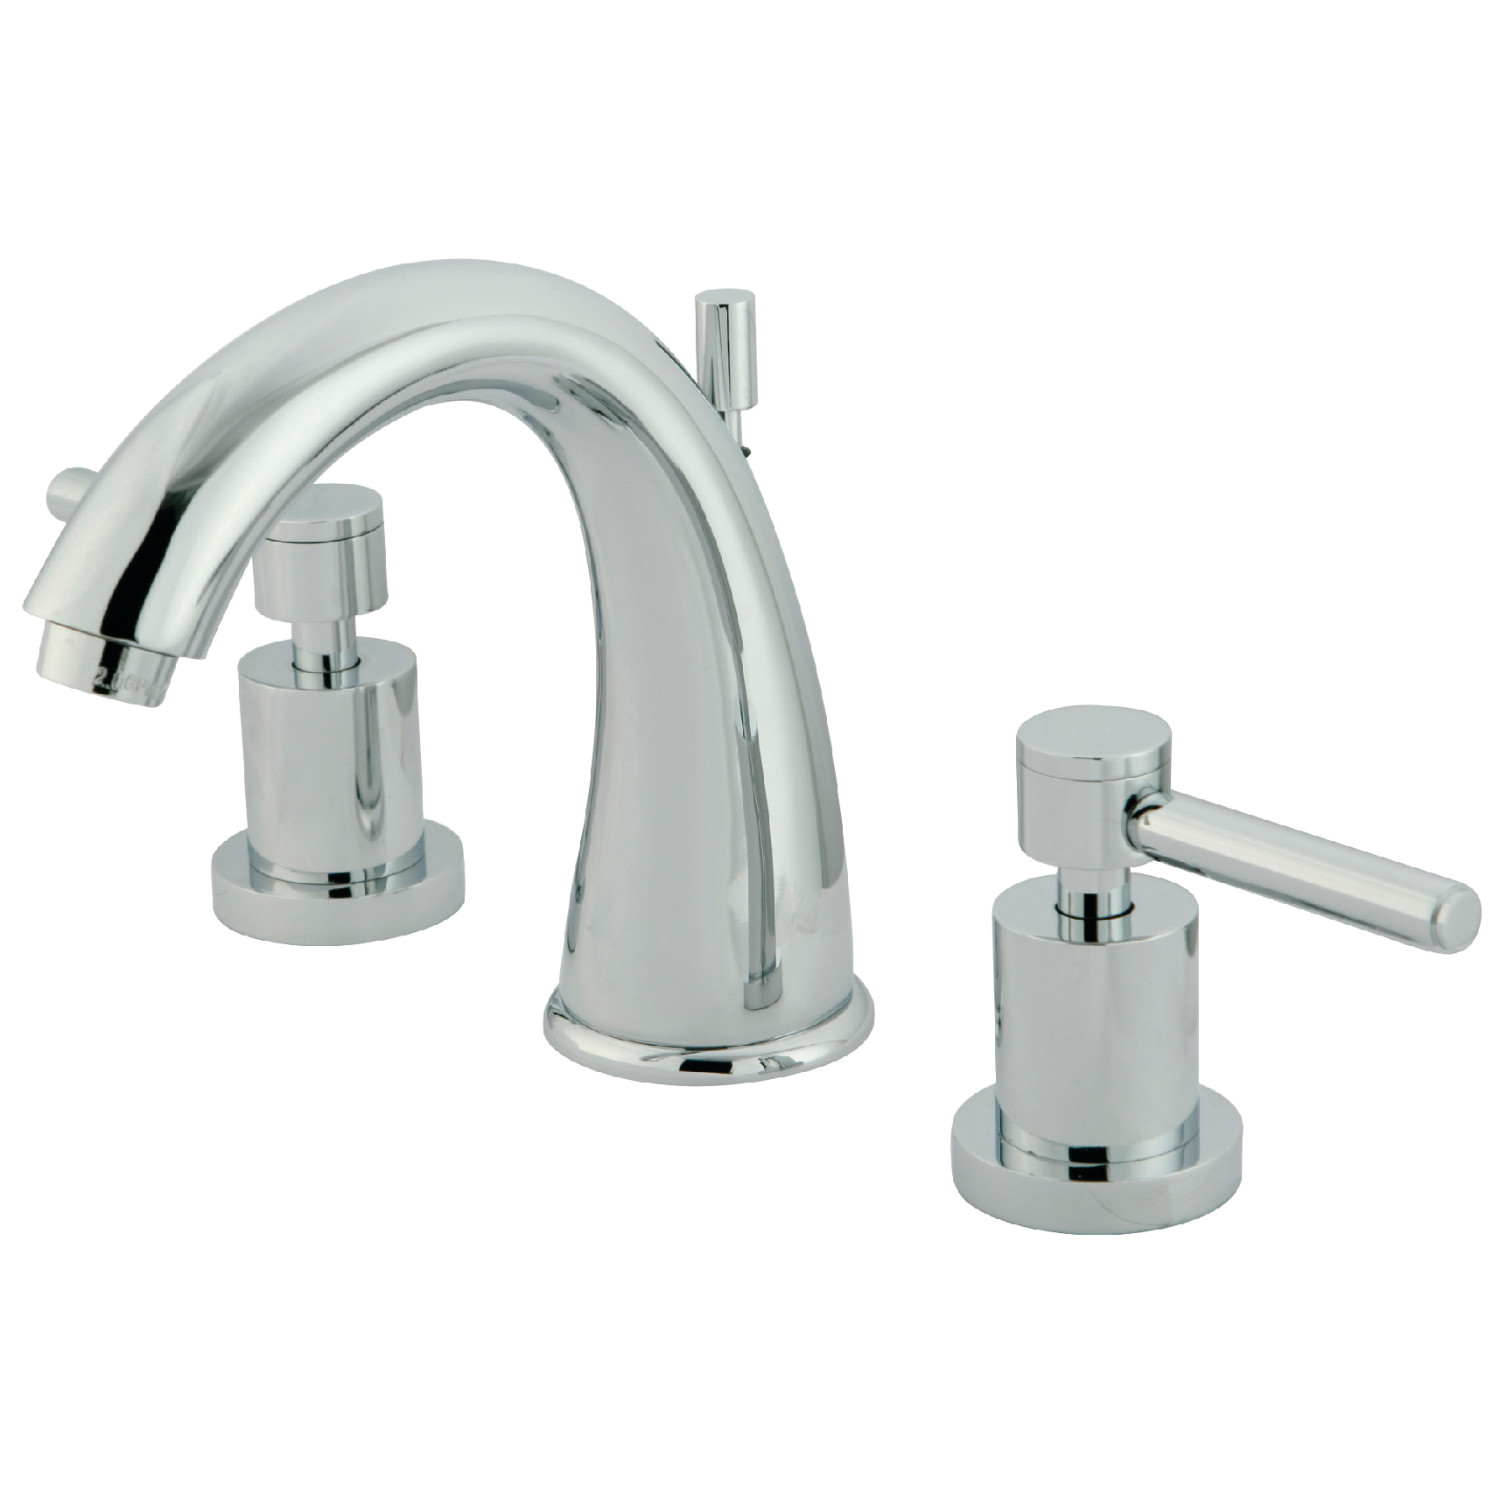 Modern 2-Handle Three-Hole Deck Mounted Widespread Bathroom Faucet with Brass Pop-Up in Polished Chrome